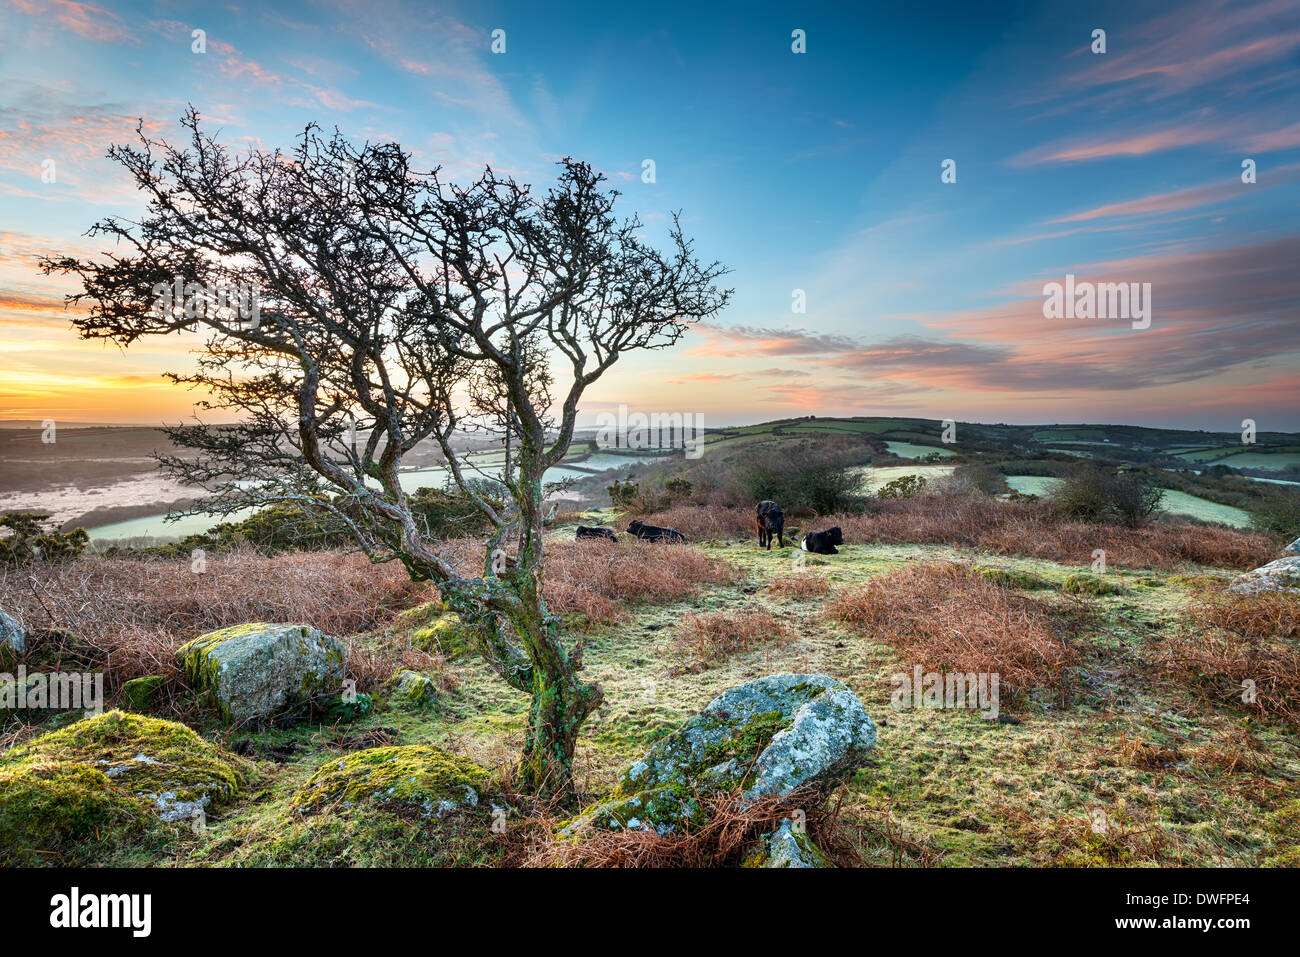 A frosty March sunrise at Helman Tor a craggy outcrop of rugged moorland near Bodmin in Cornwall, an HDR image - Stock Image